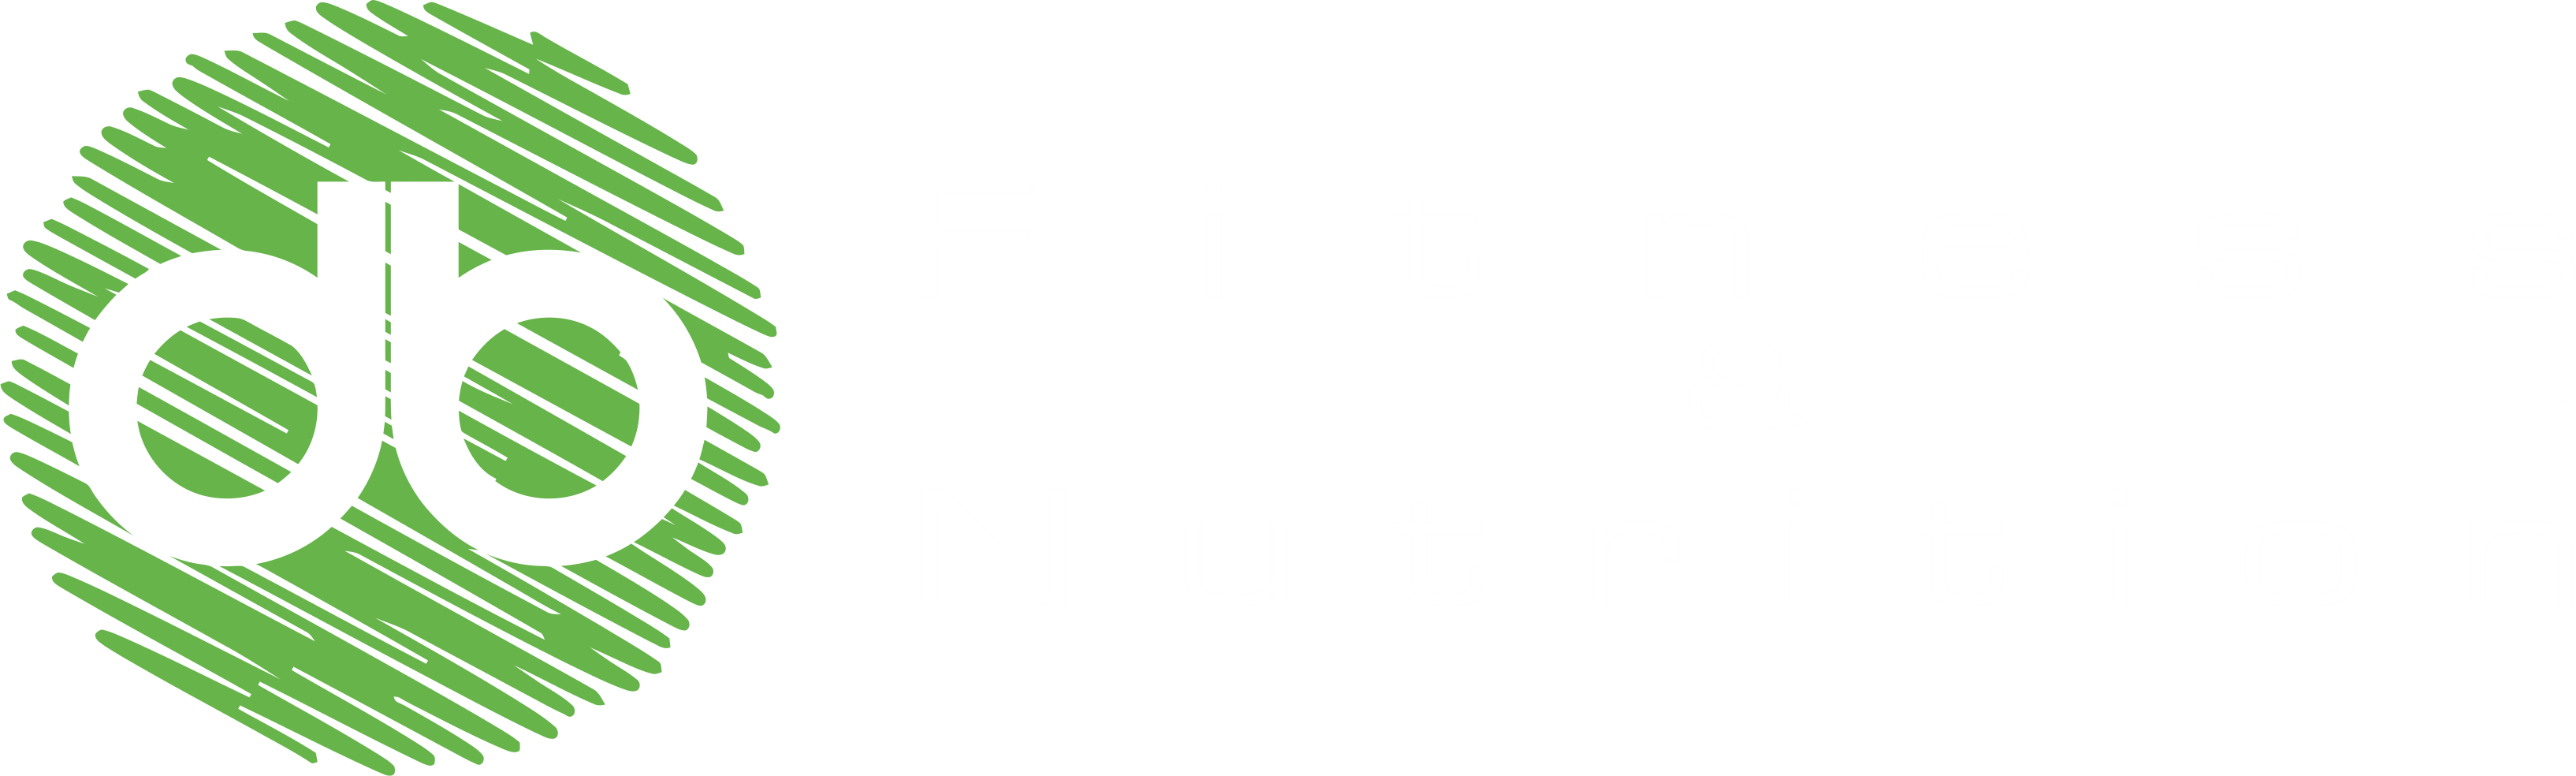 DB Fitness and Nutrition logo - Fitness & Nutrition